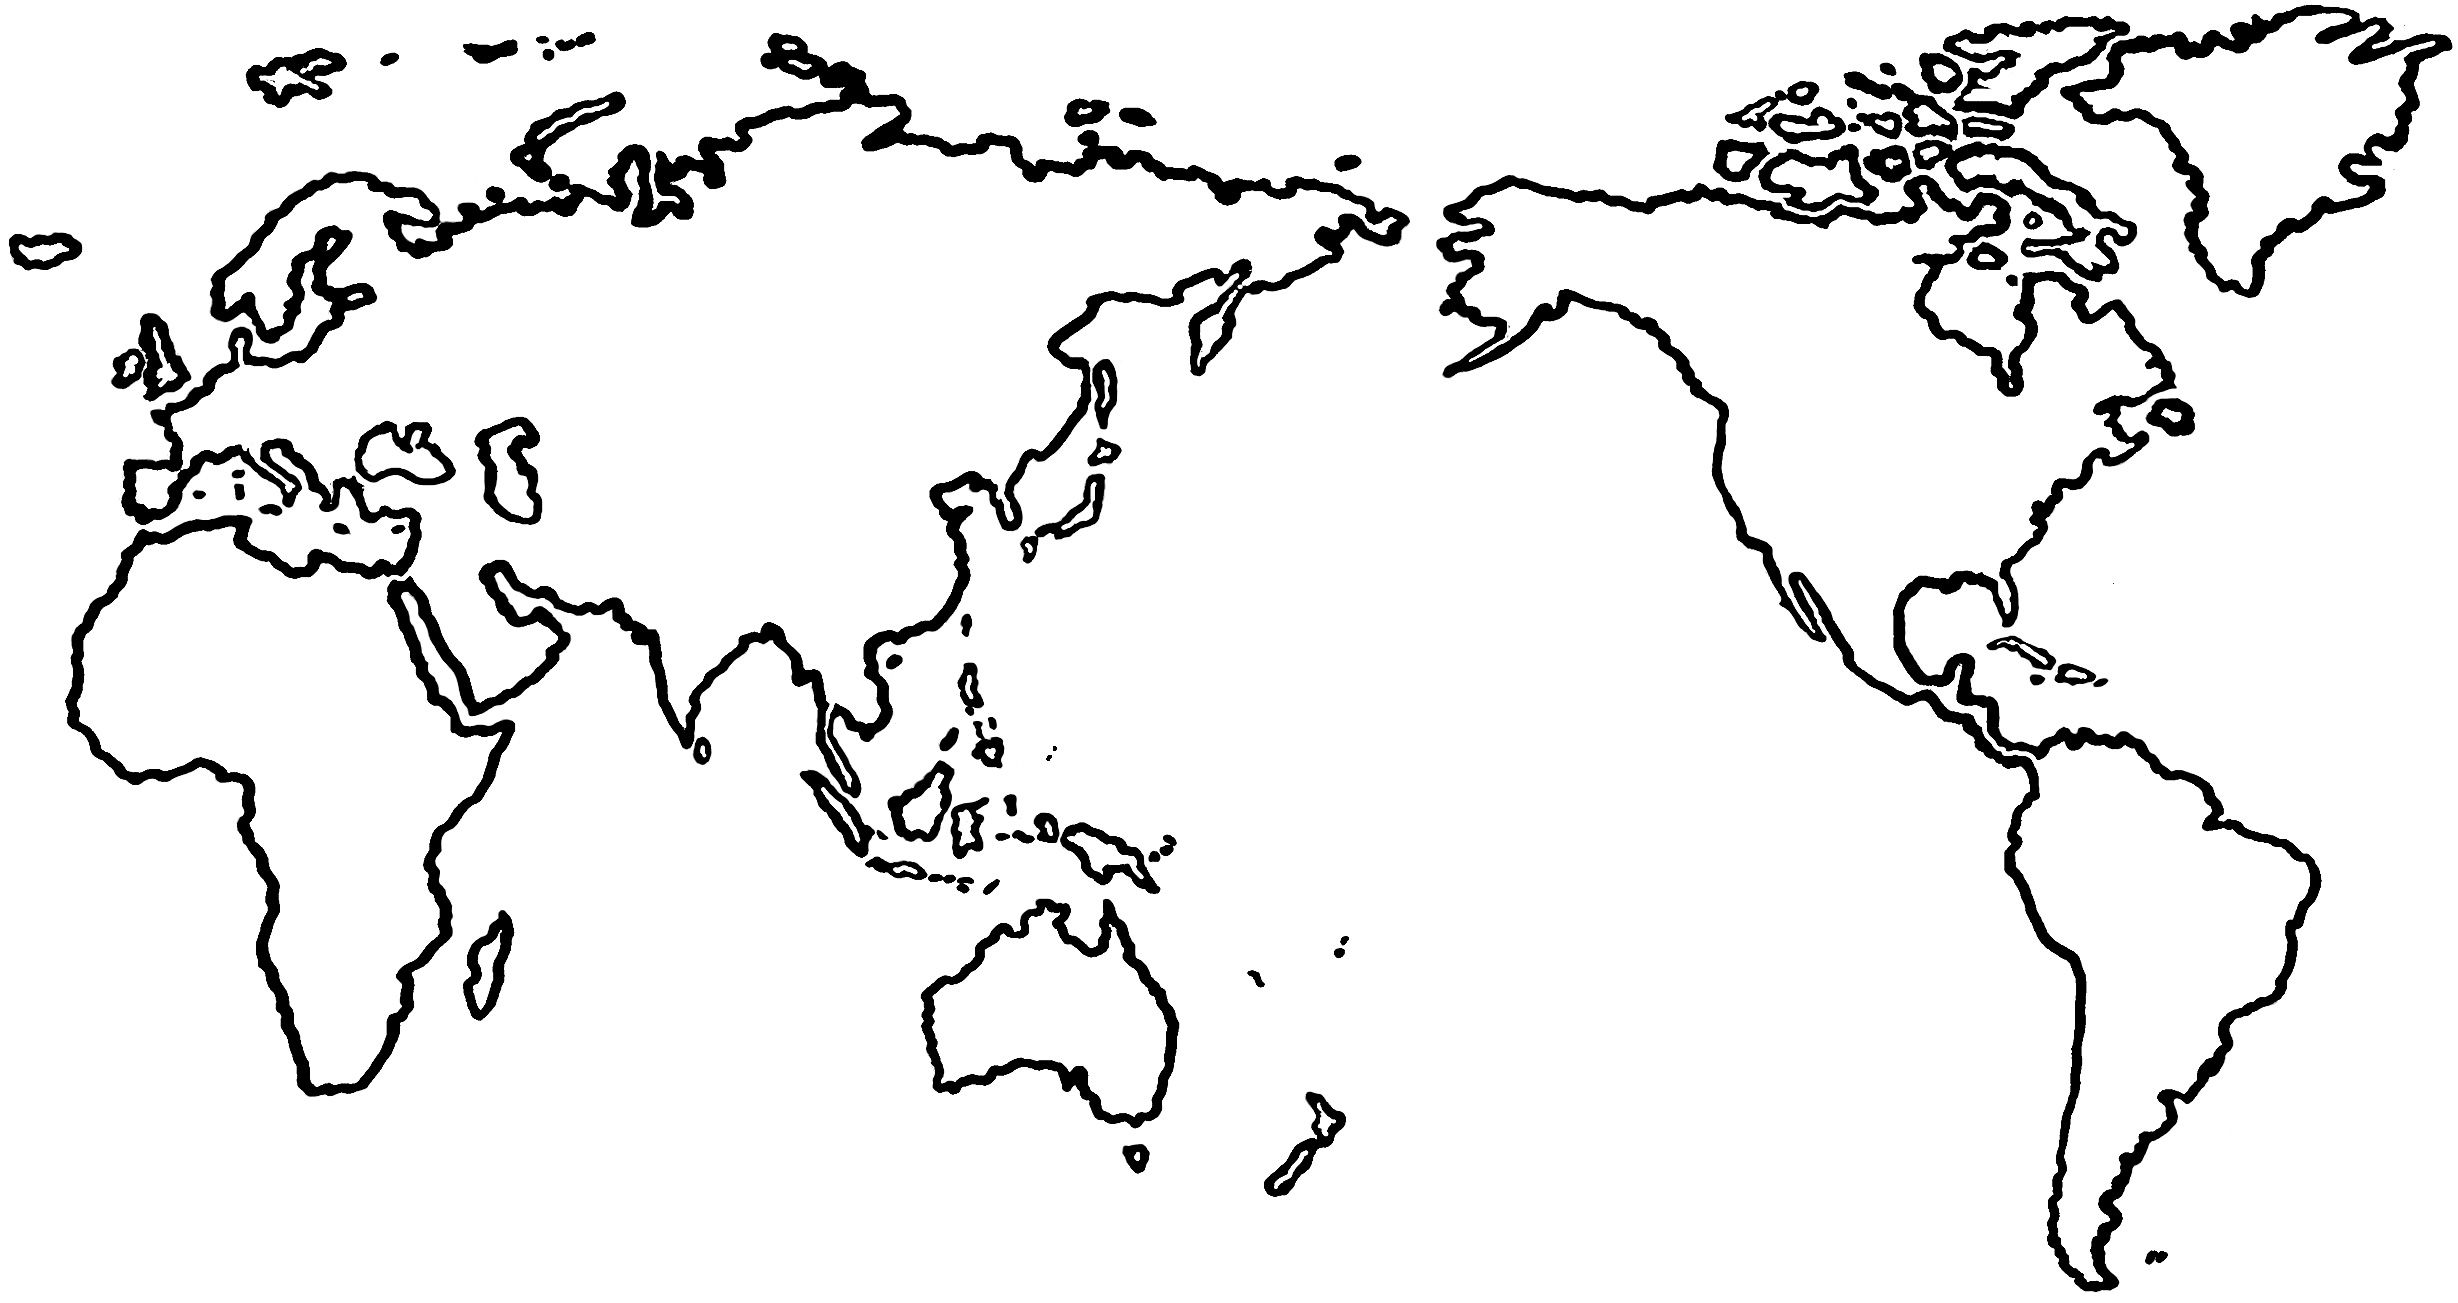 How to draw map of world open this world map template jpeg and how to draw map of world open this world map template jpeg and save it to your disk gumiabroncs